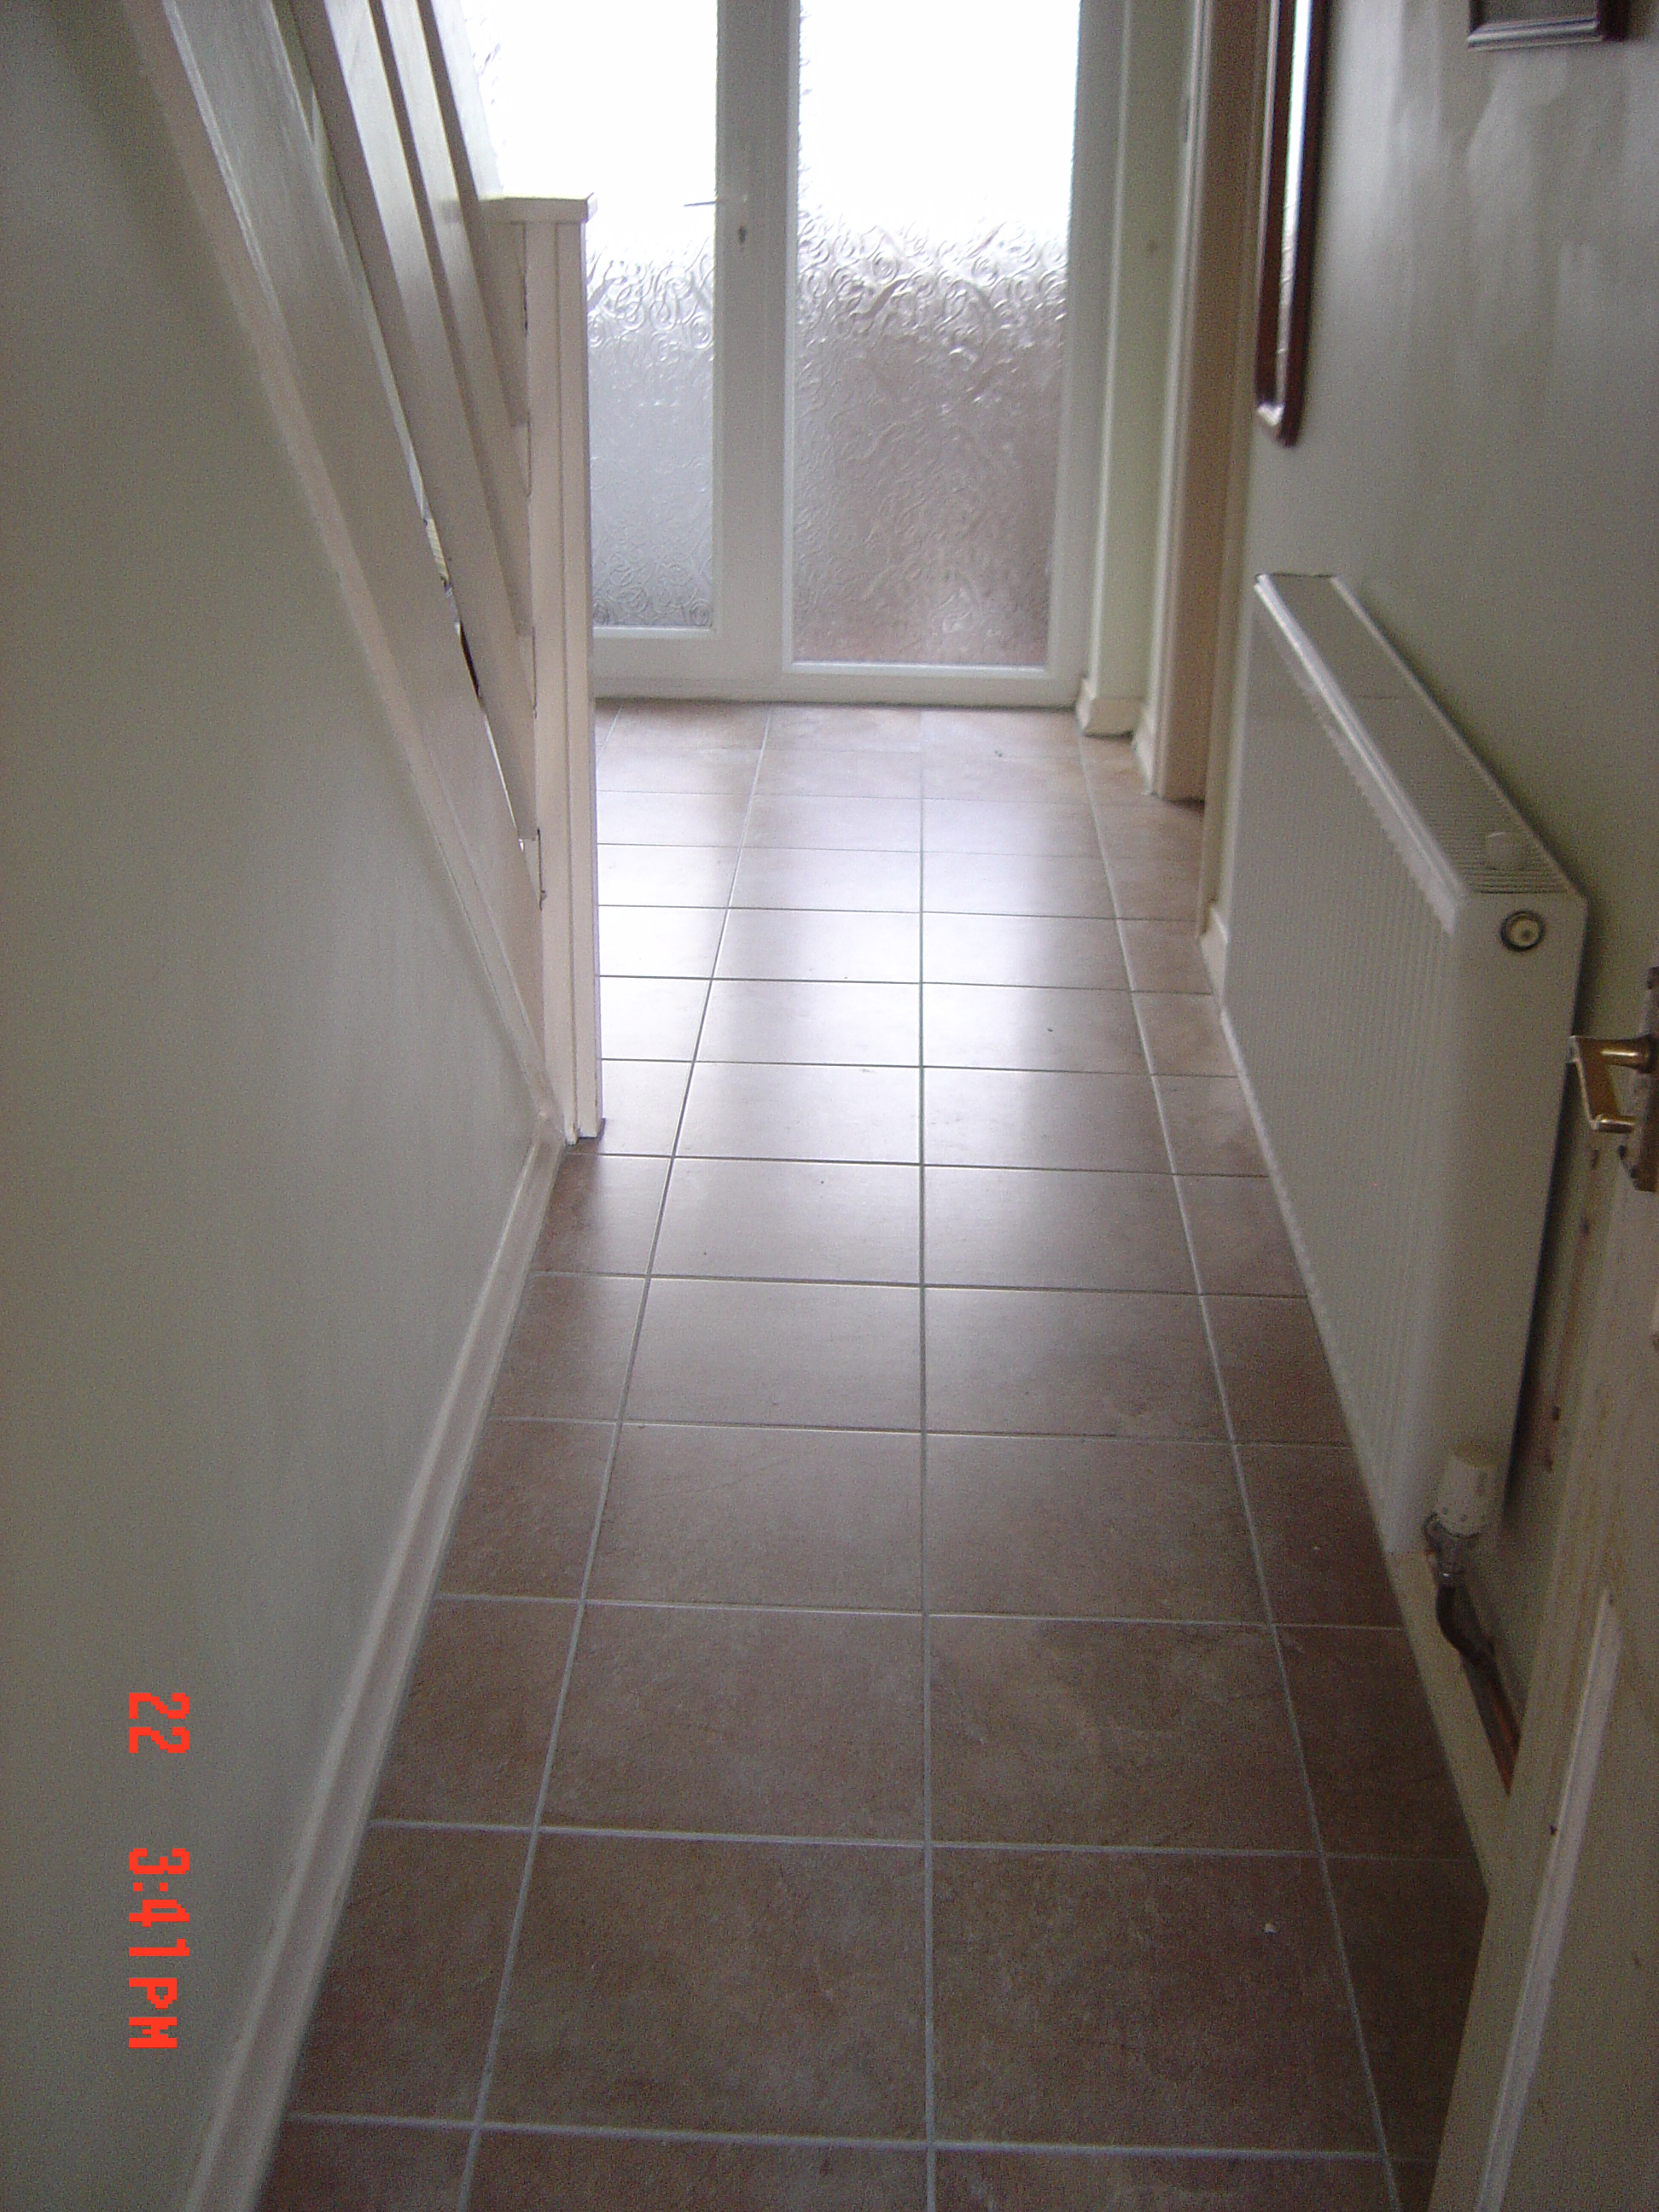 Tiling floors pab and son plumbing and property services for Tiles images for hall